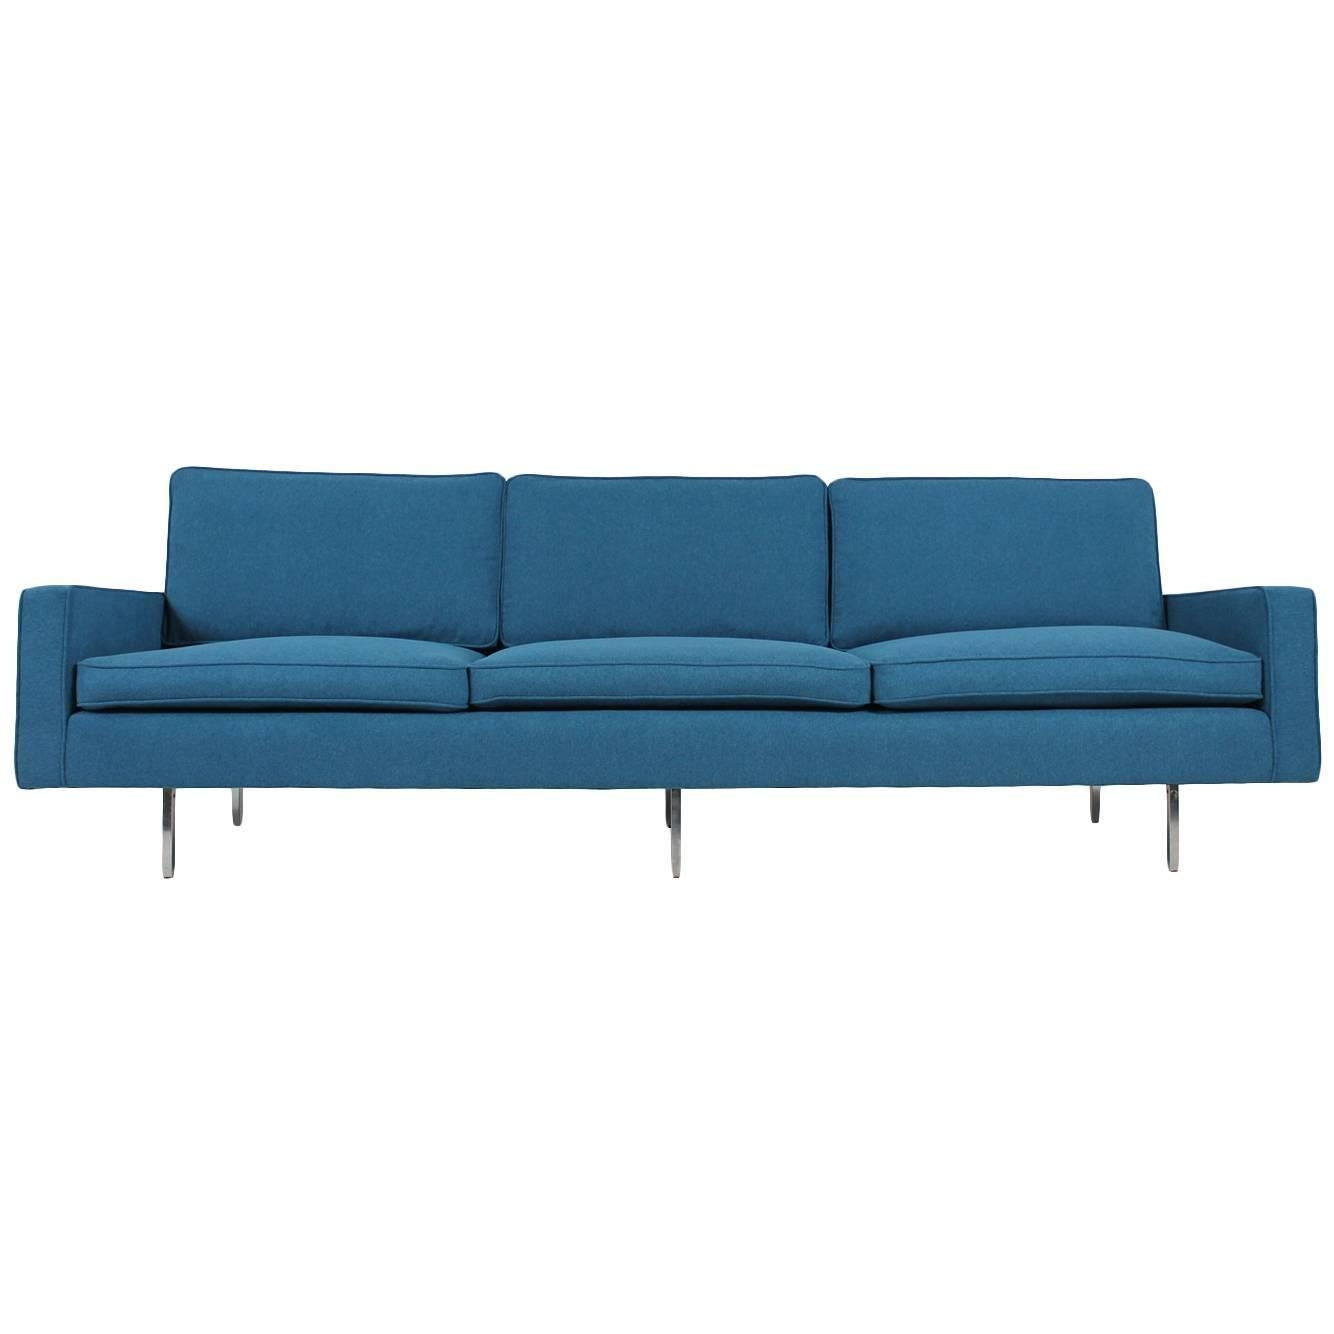 Beautiful Mid Century Florence Knoll Sofa Mod (View 2 of 20)